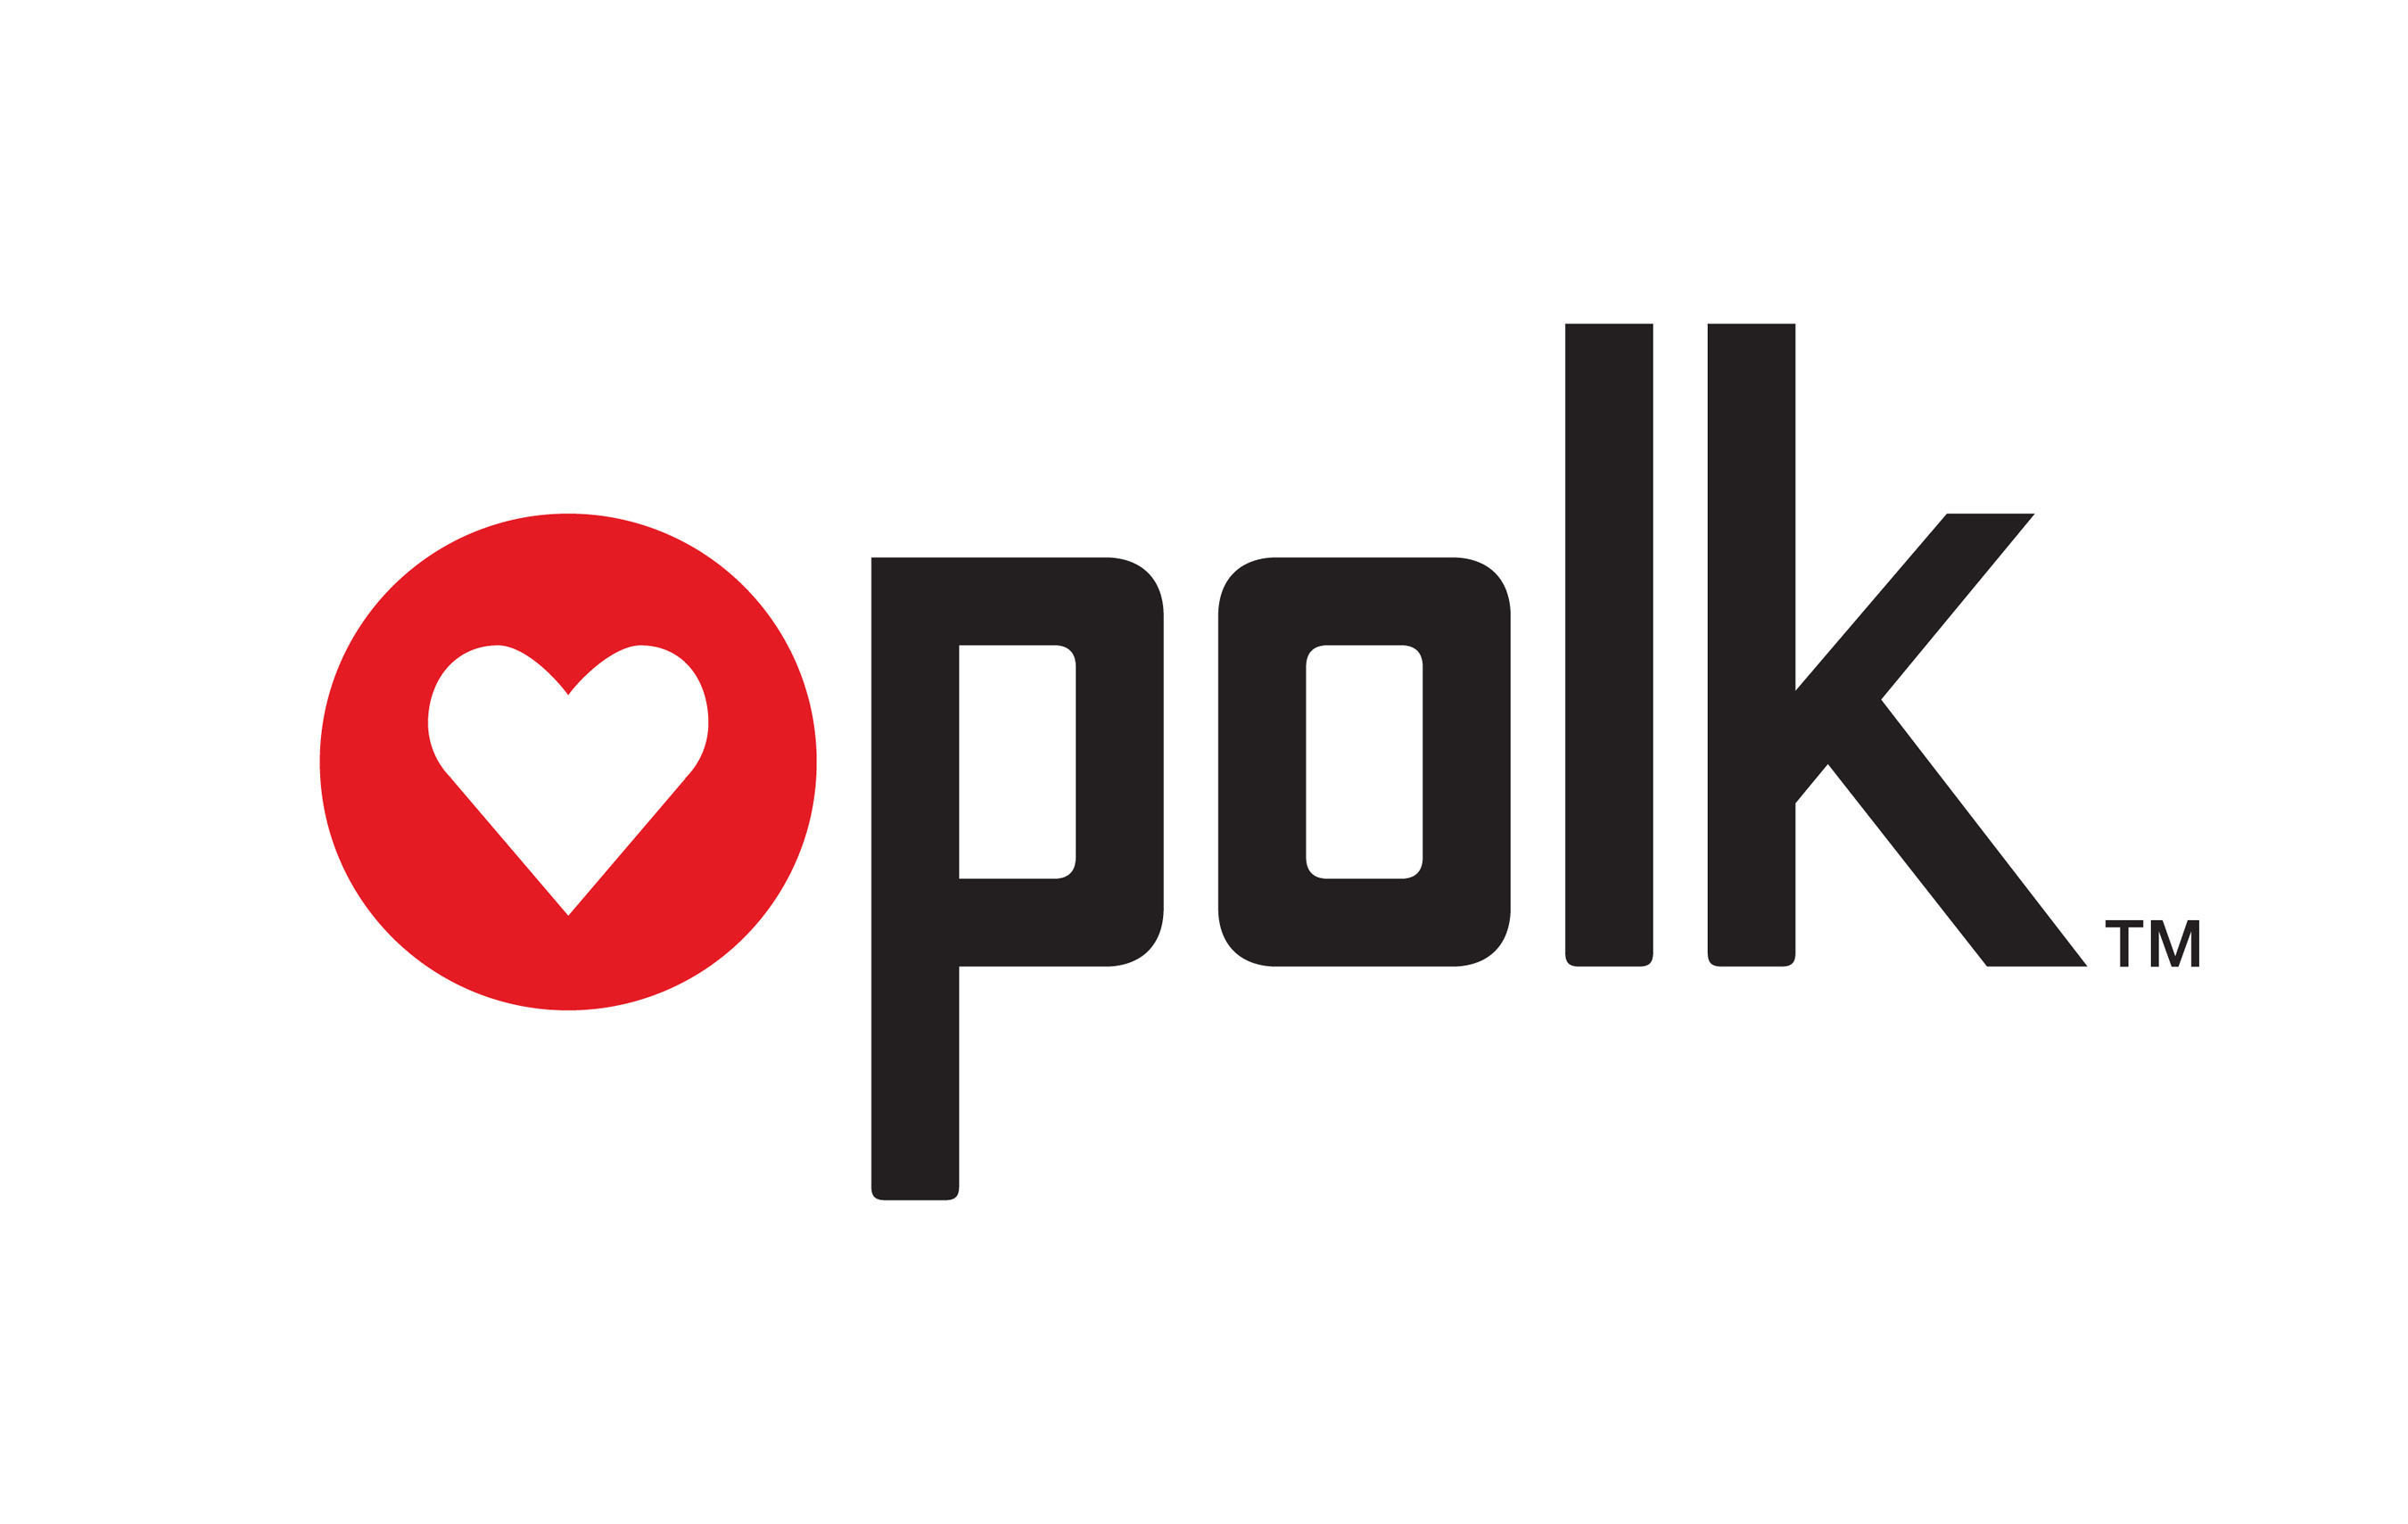 polk lesbian personals 100% free online dating in polk 1,500,000 daily active members.